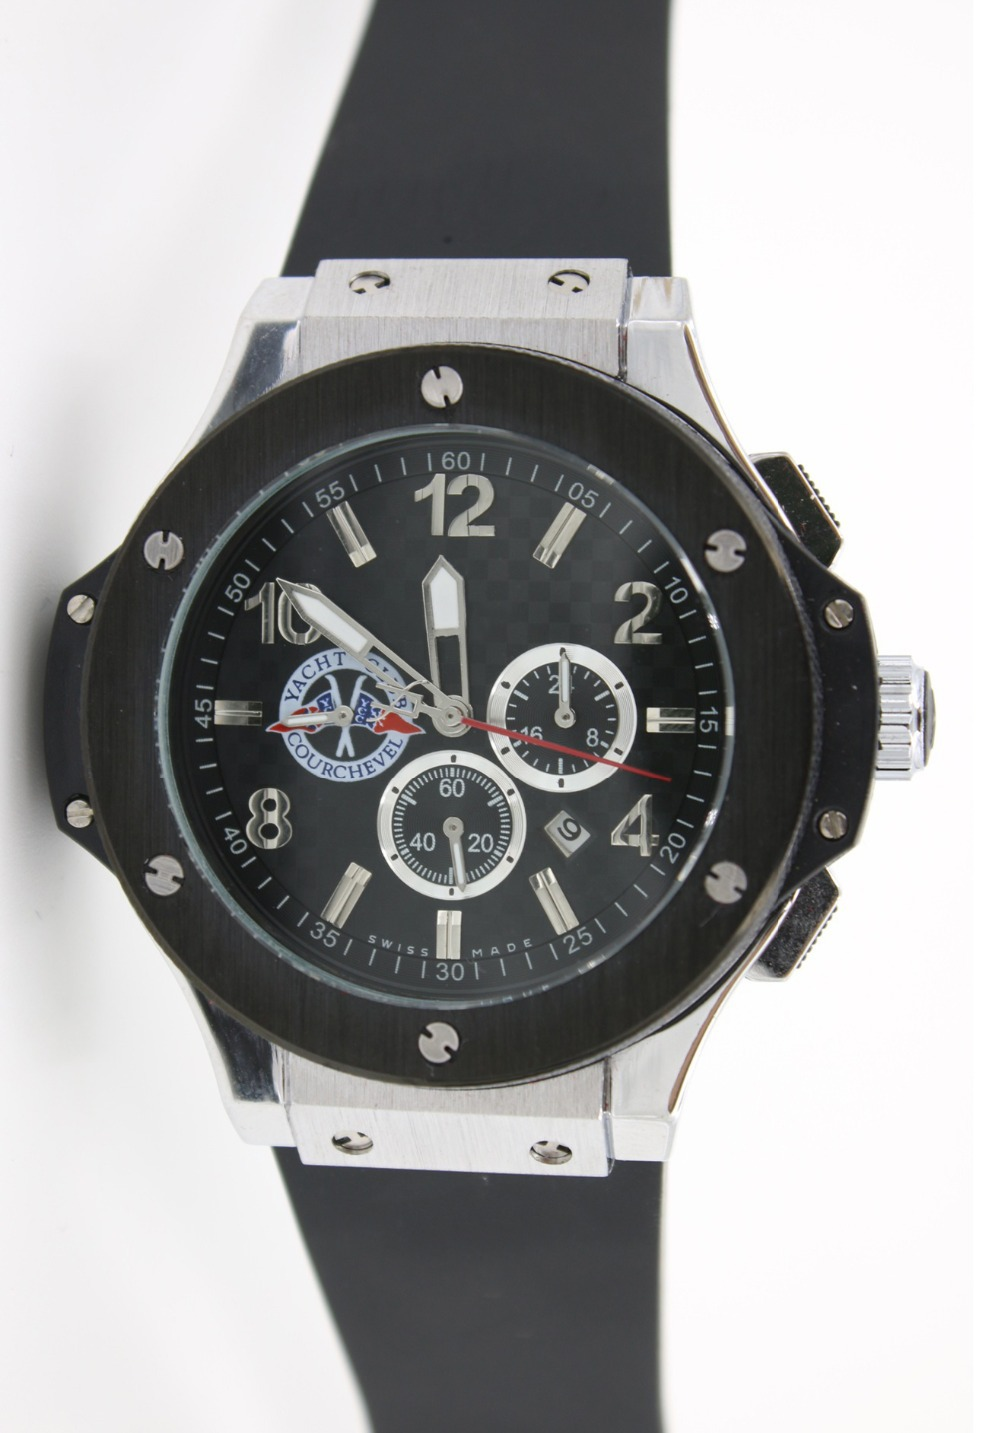 High quality silicone wristbands alloy mechanical leisure watches relogio boamigreloj acero XFCS s003(China (Mainland))